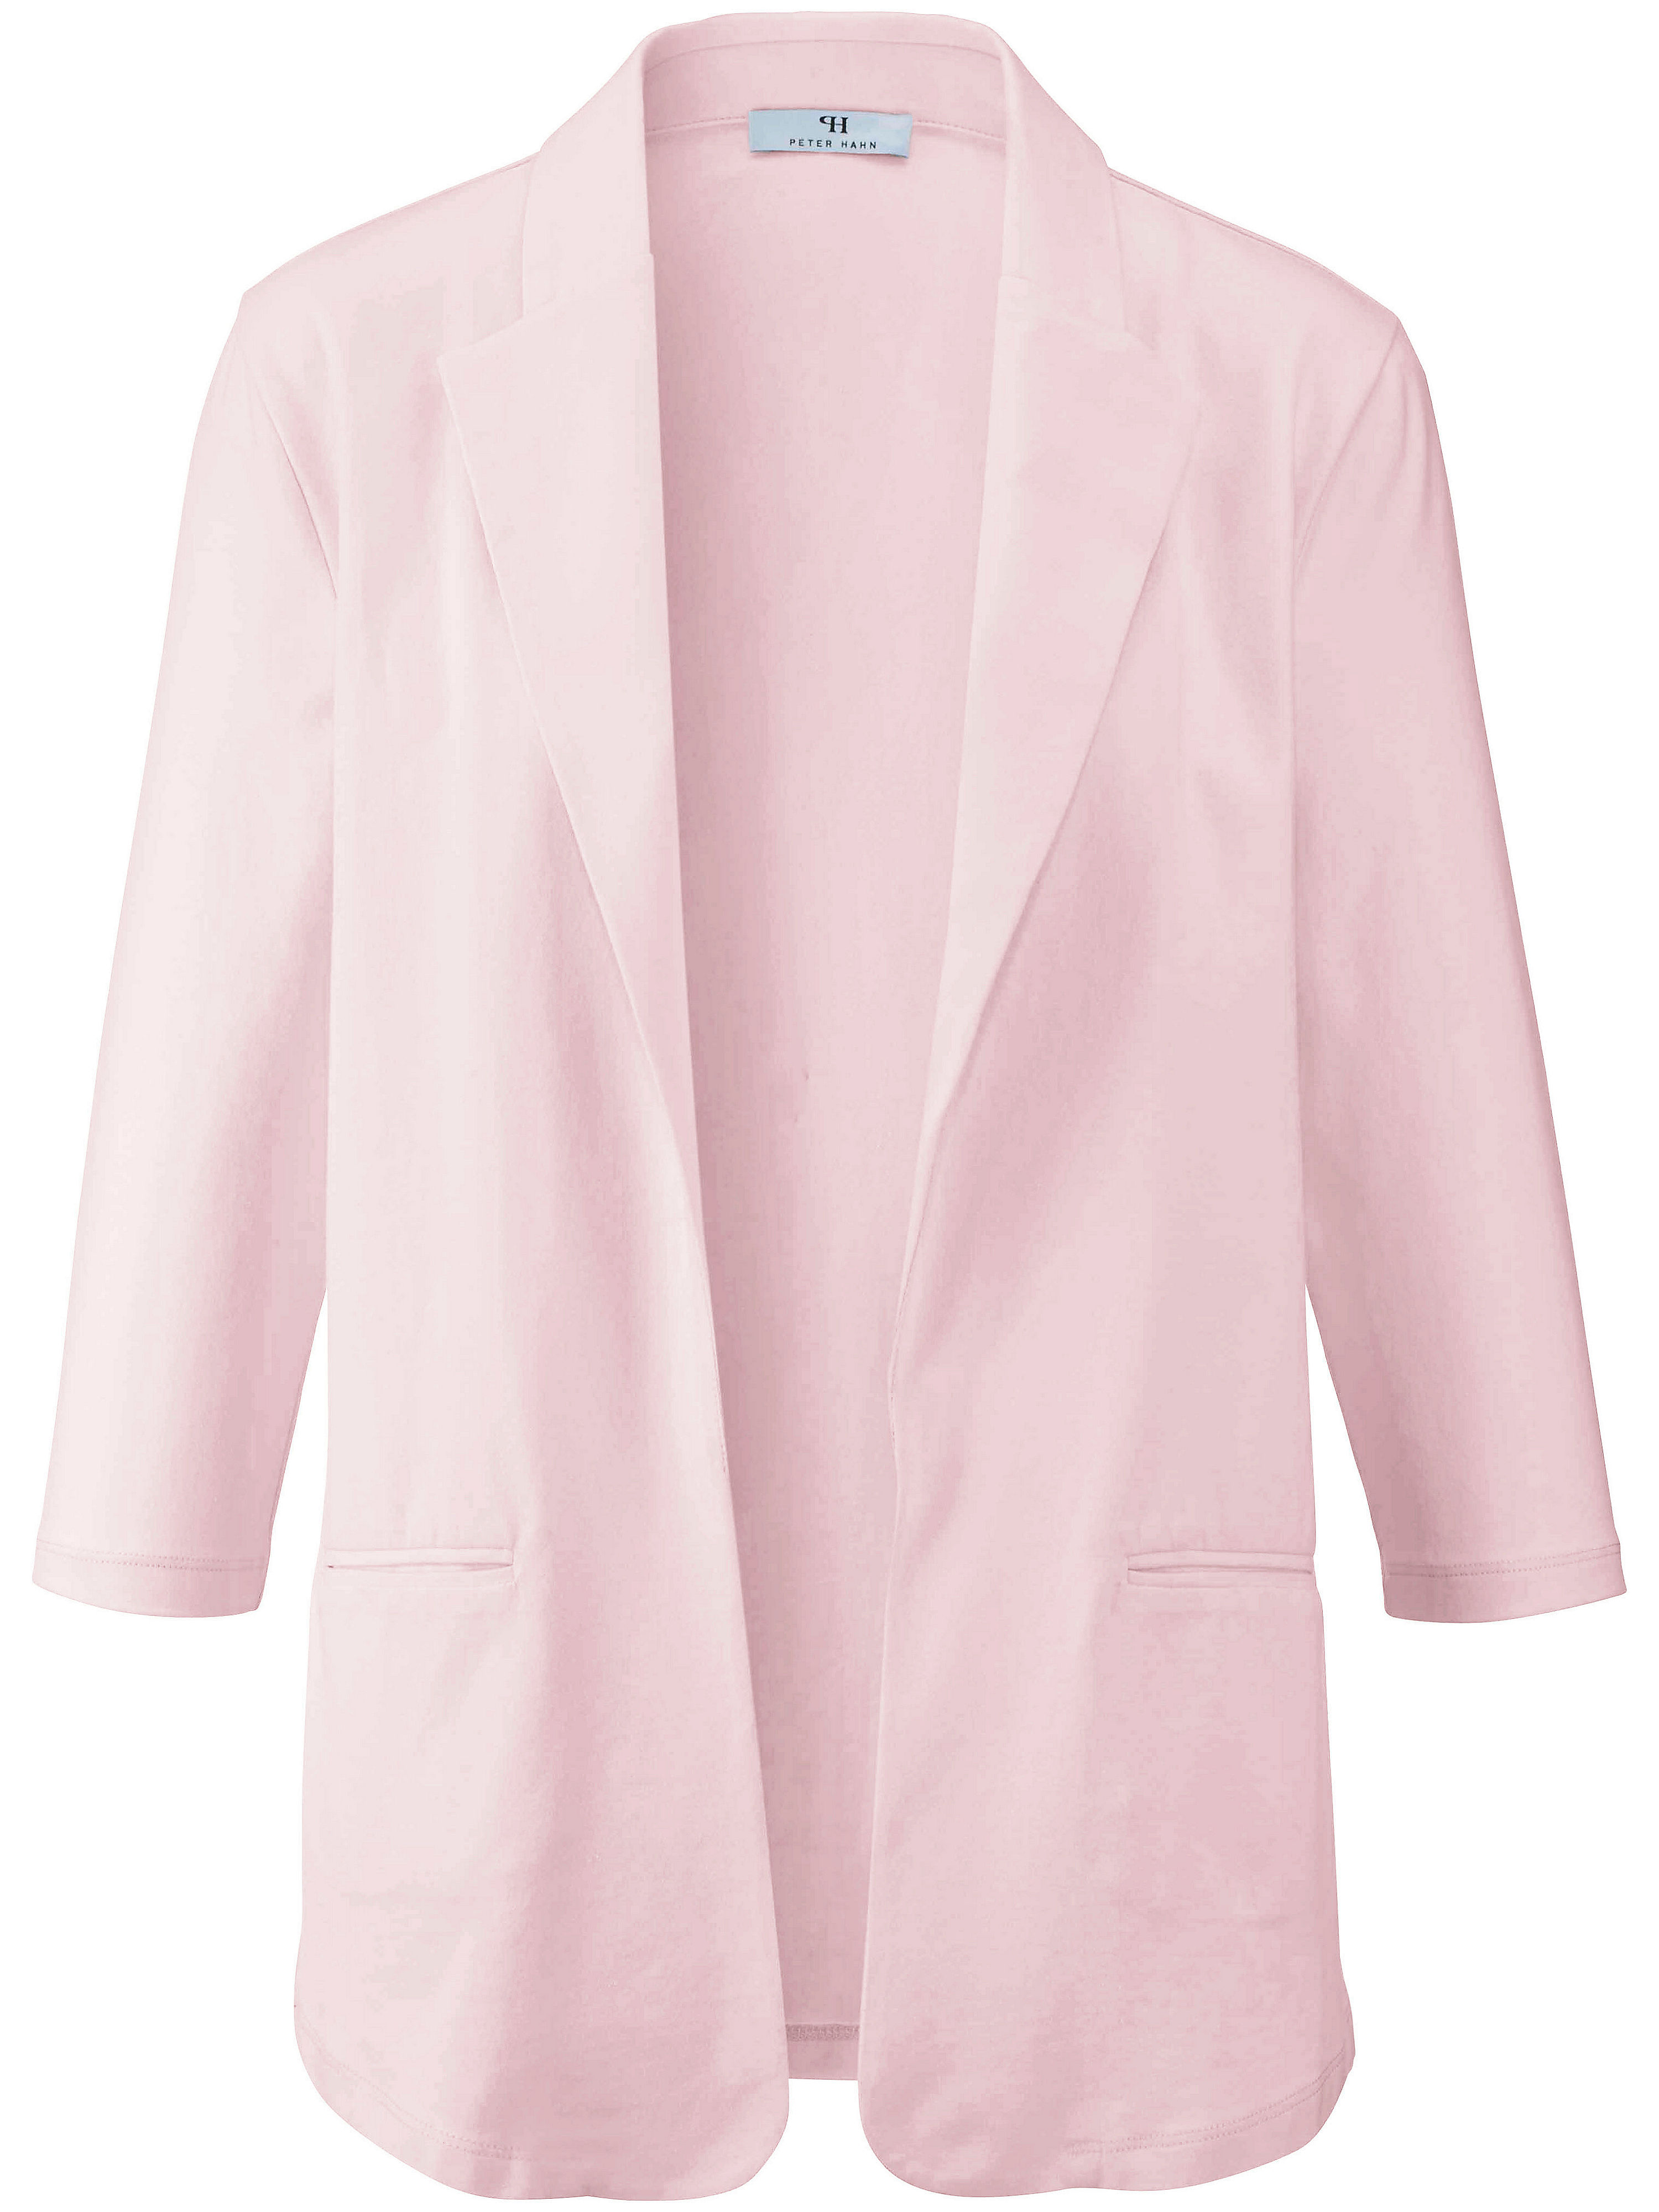 Le blazer jersey Peter Hahn rose taille 50